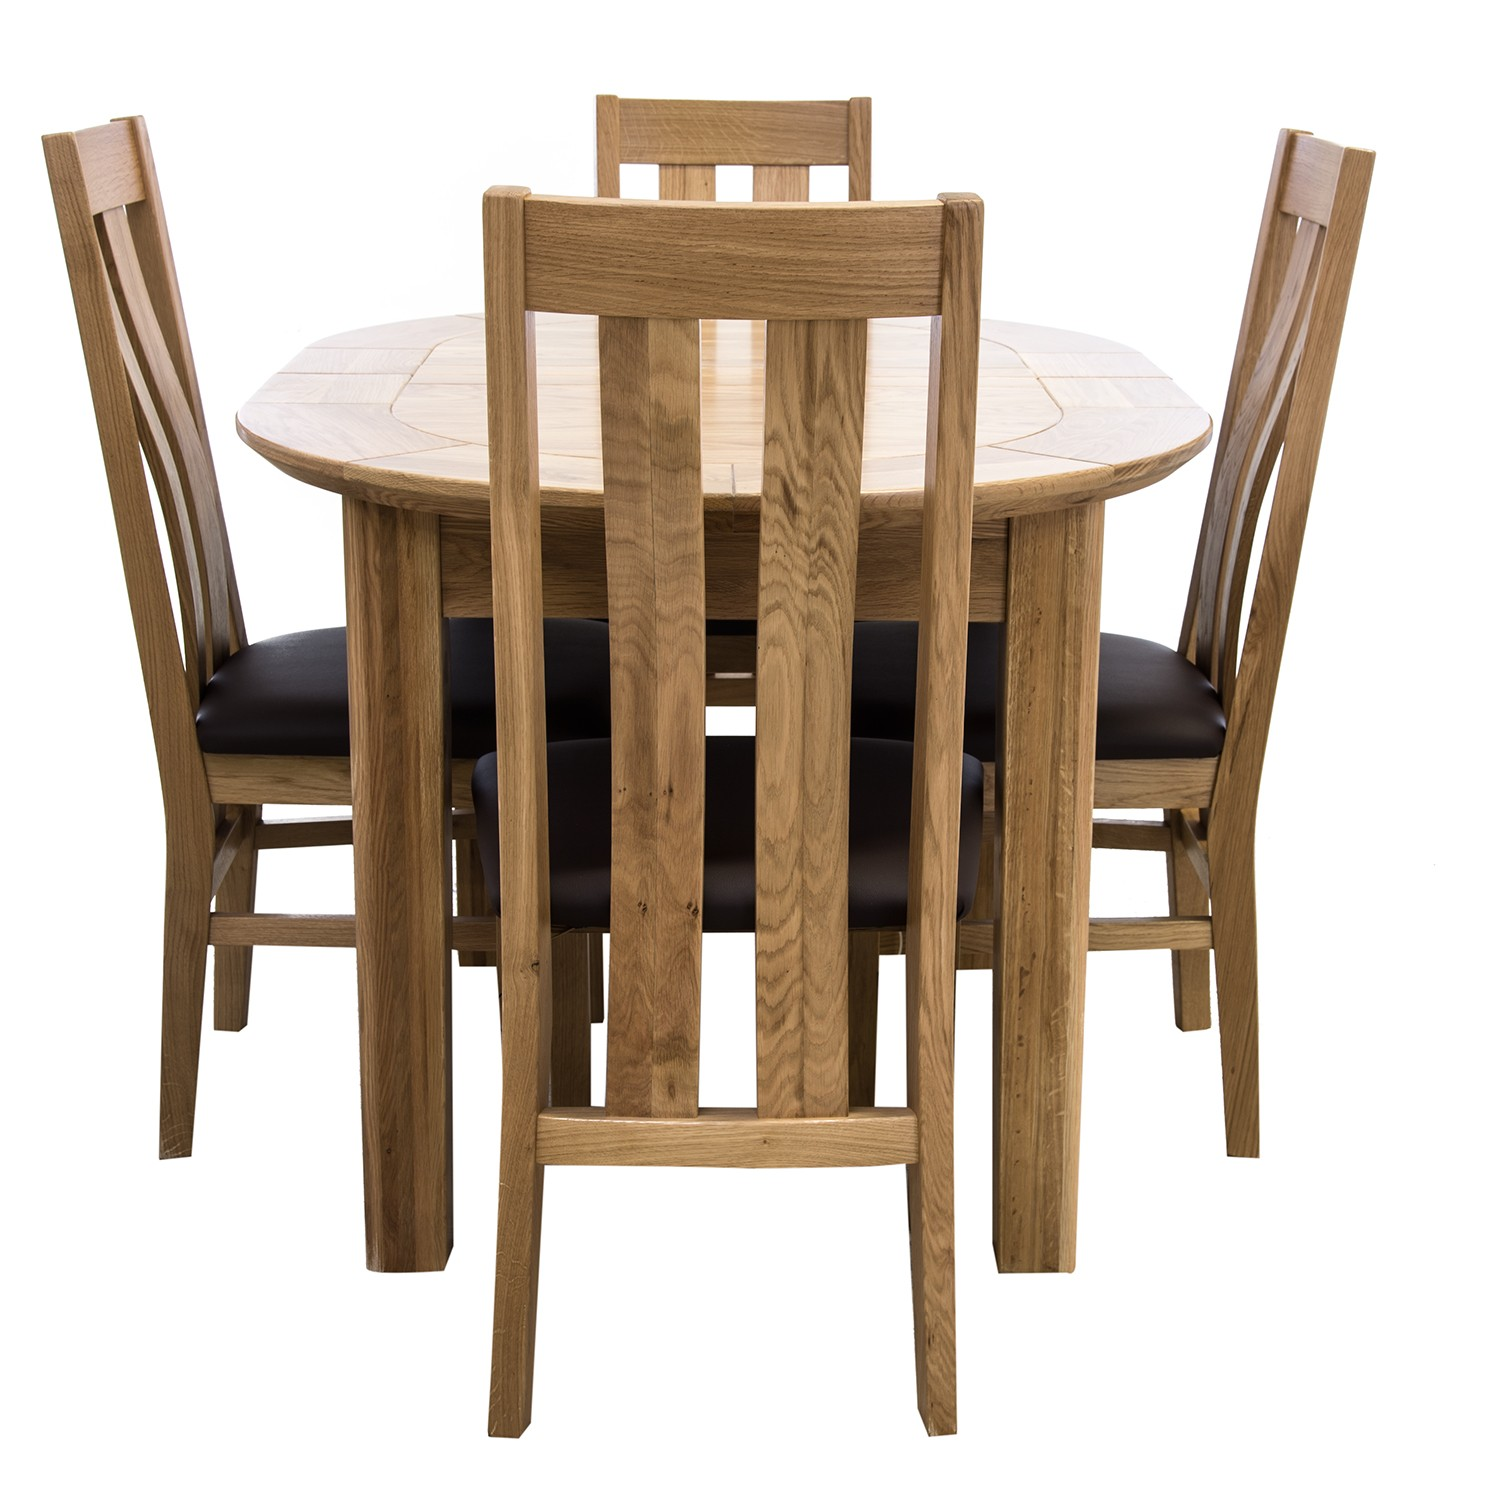 Small Dining Table For 4: Casa Toulouse Small D-End Table & 4 Chairs Dining Set